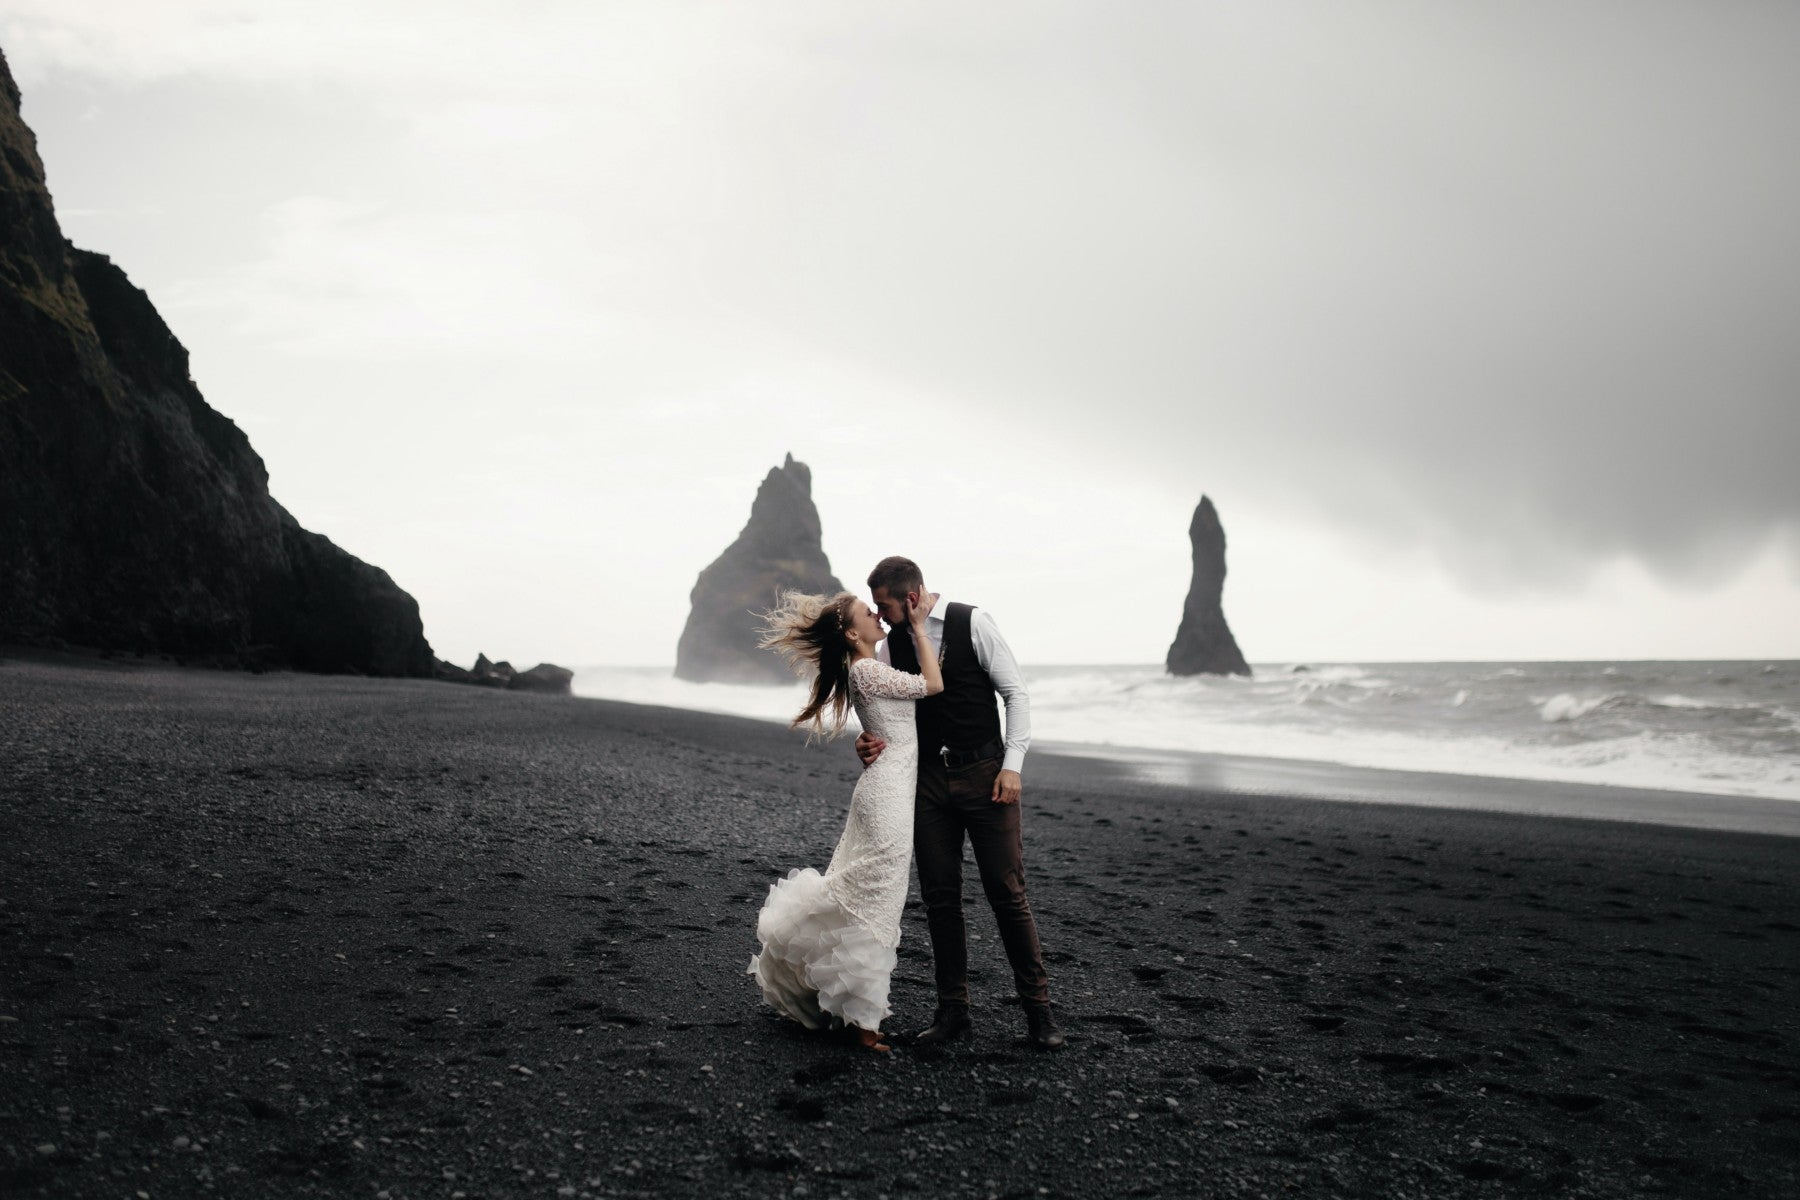 Unique Wedding Rings from Iceland - Our Latest Release